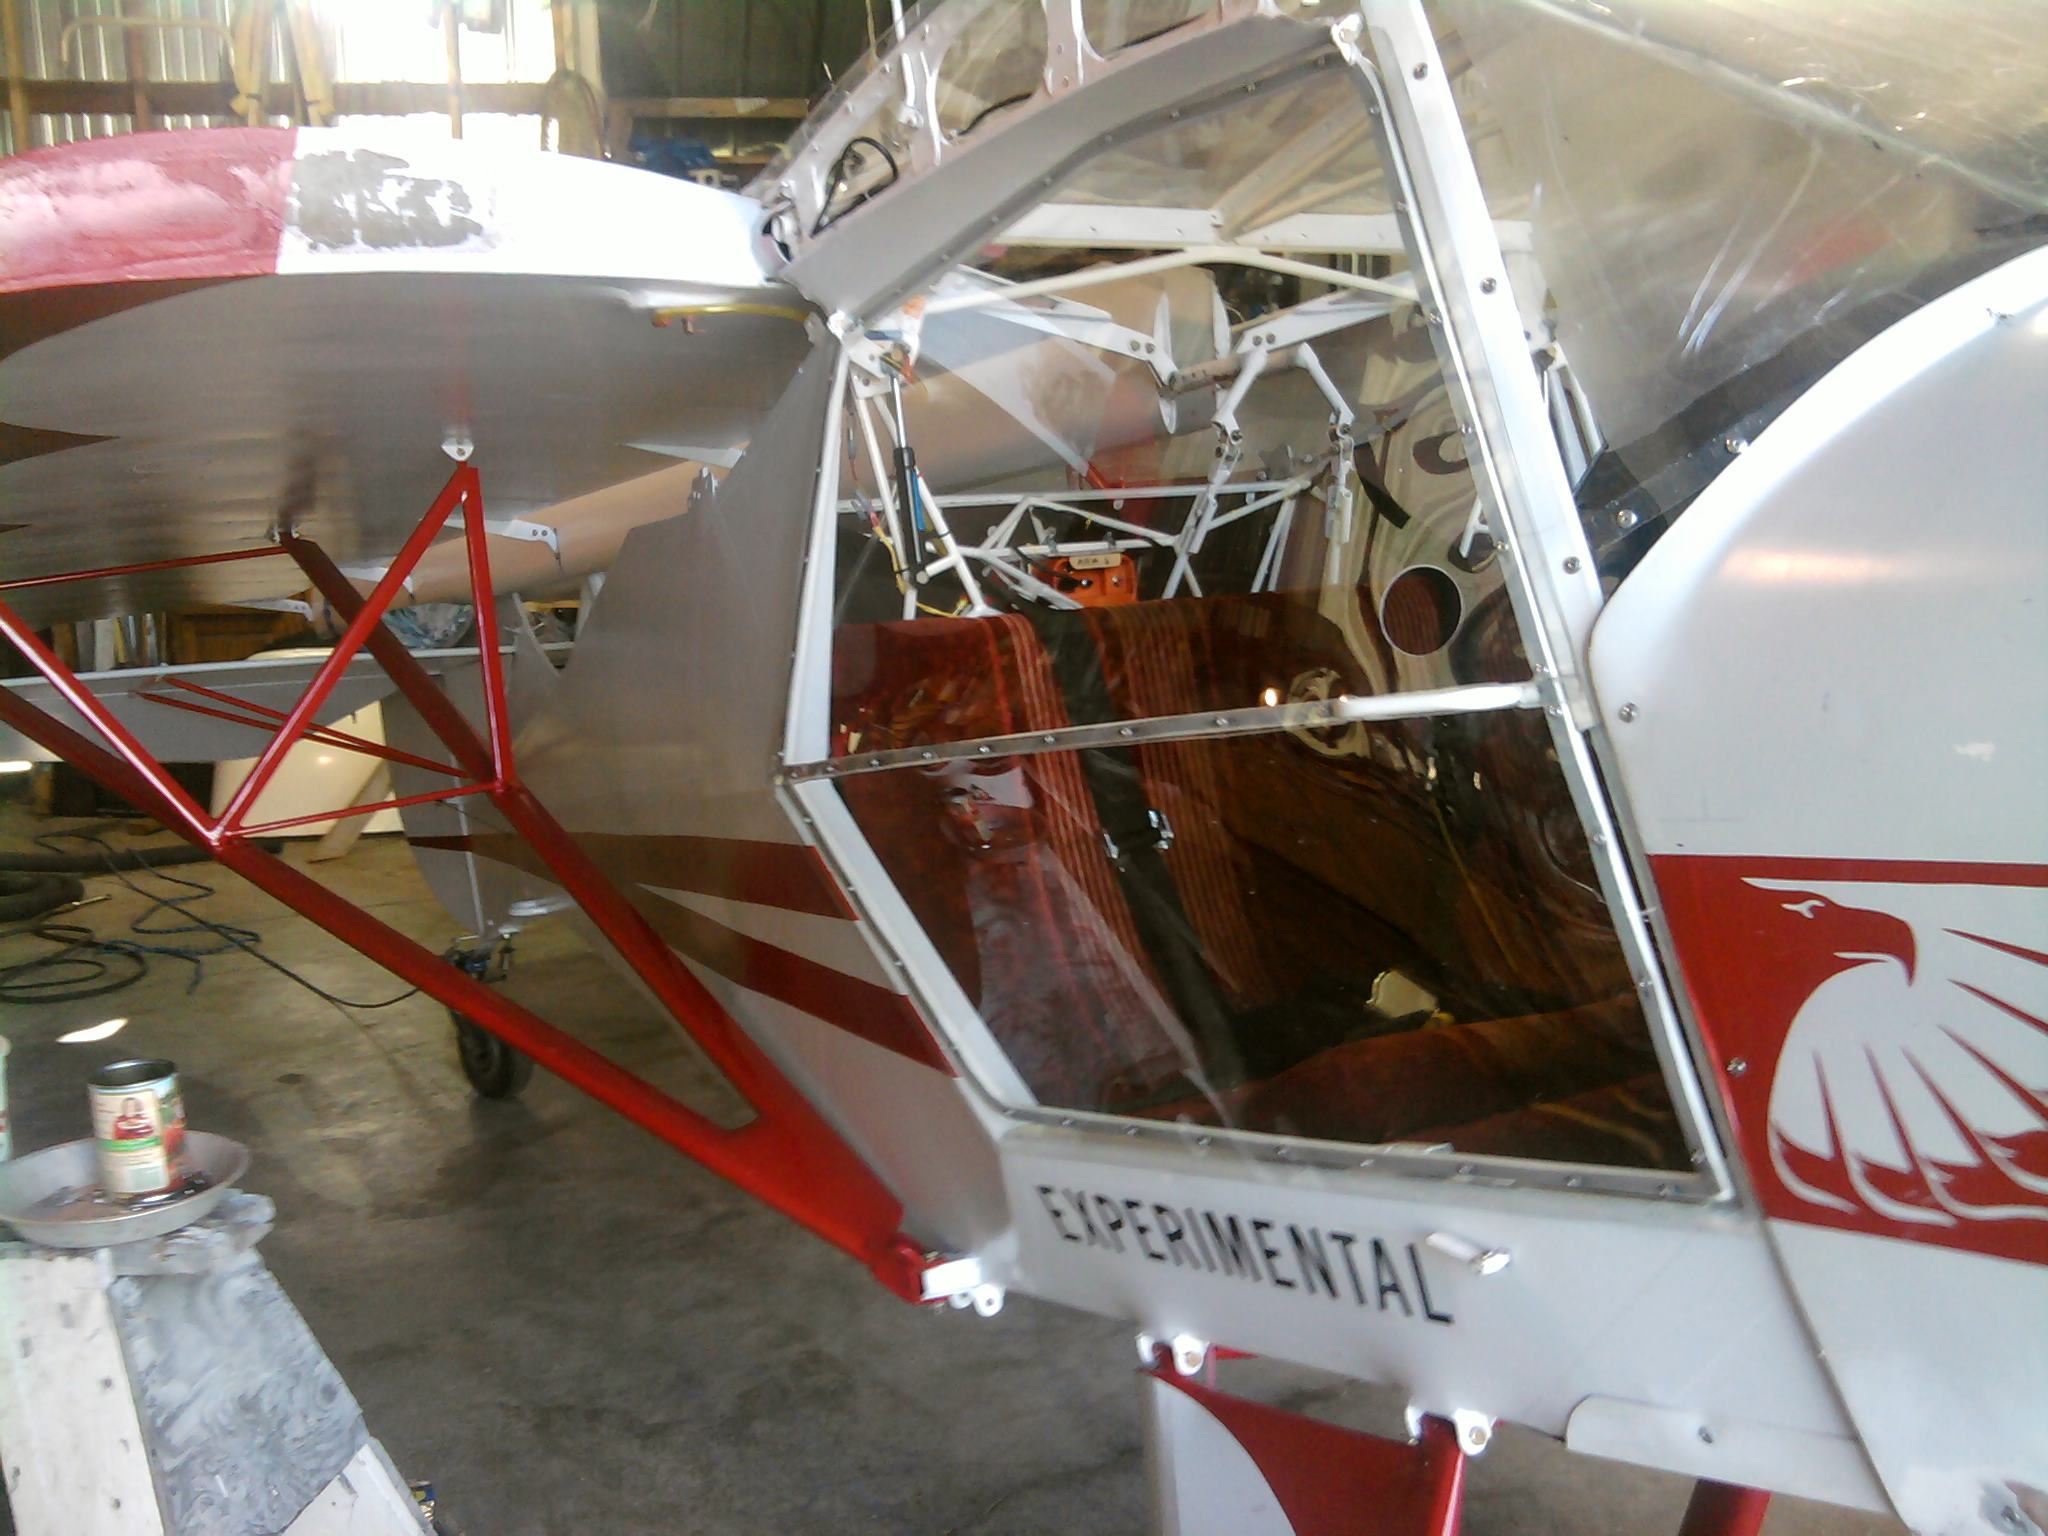 Avid project on barnstormers - For Sale and wanted, you got it, I